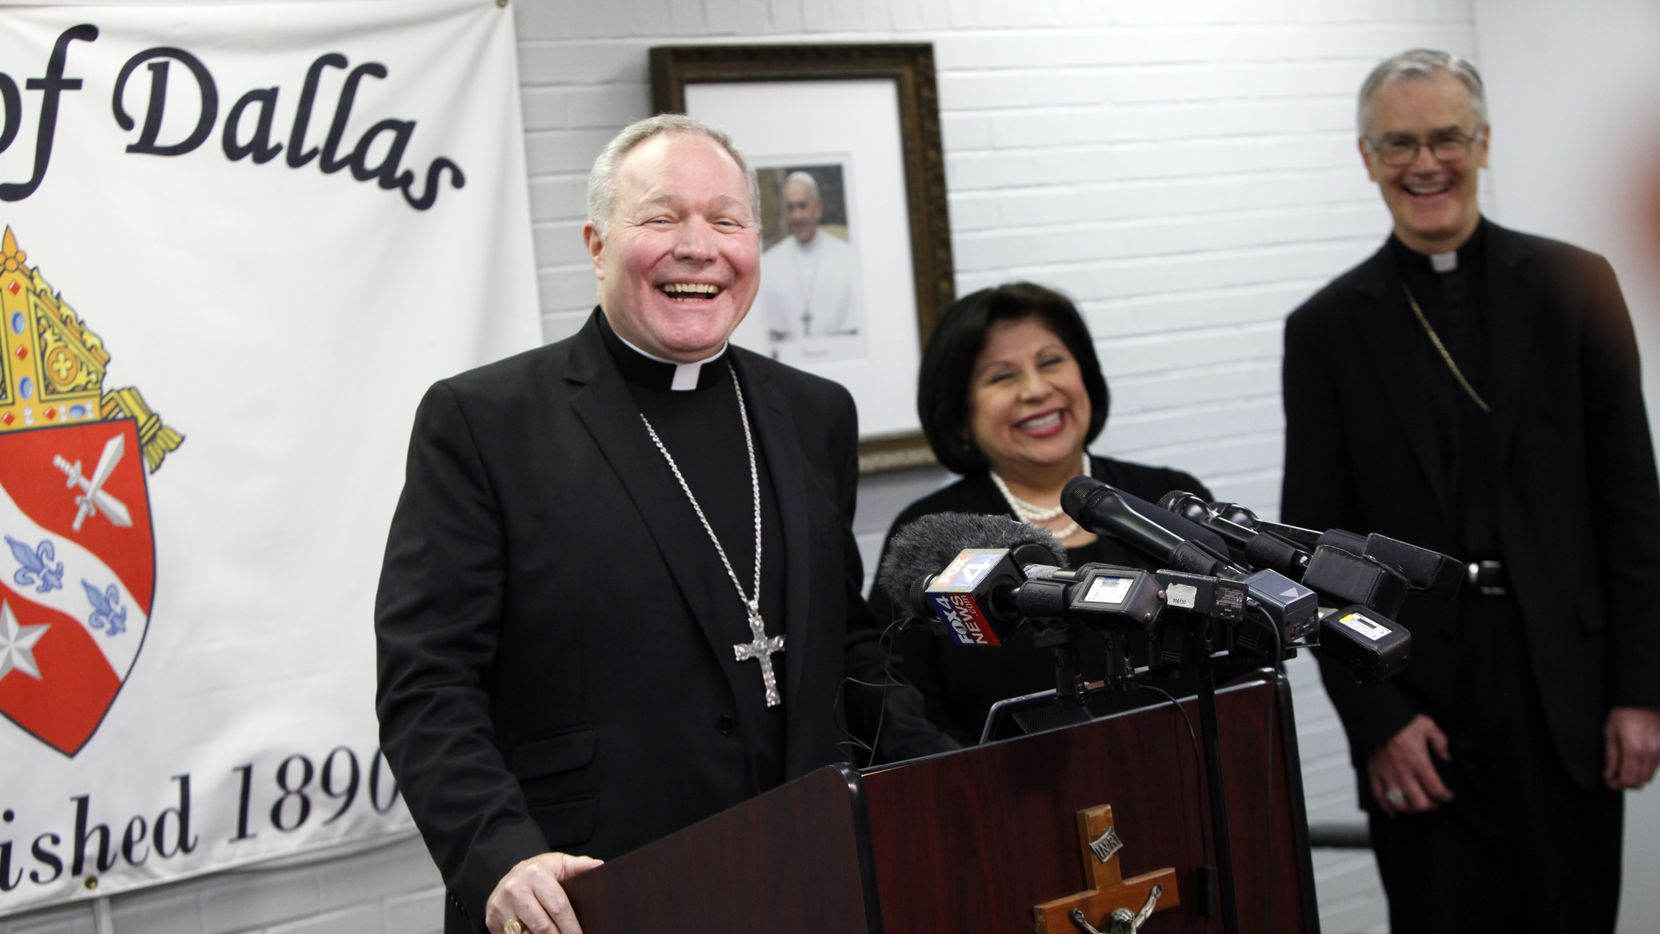 The Most Reverend Edward J. Burns speaks during a press conference as he's introduced as the new Bishop of Dallas at the Diocese offices in Dallas on Dec. 13, 2016. At right of the Bishop is the Director of Communications Annette Gonzales Taylor and Dallas Auxiliary Bishop John Gregory Kelly.